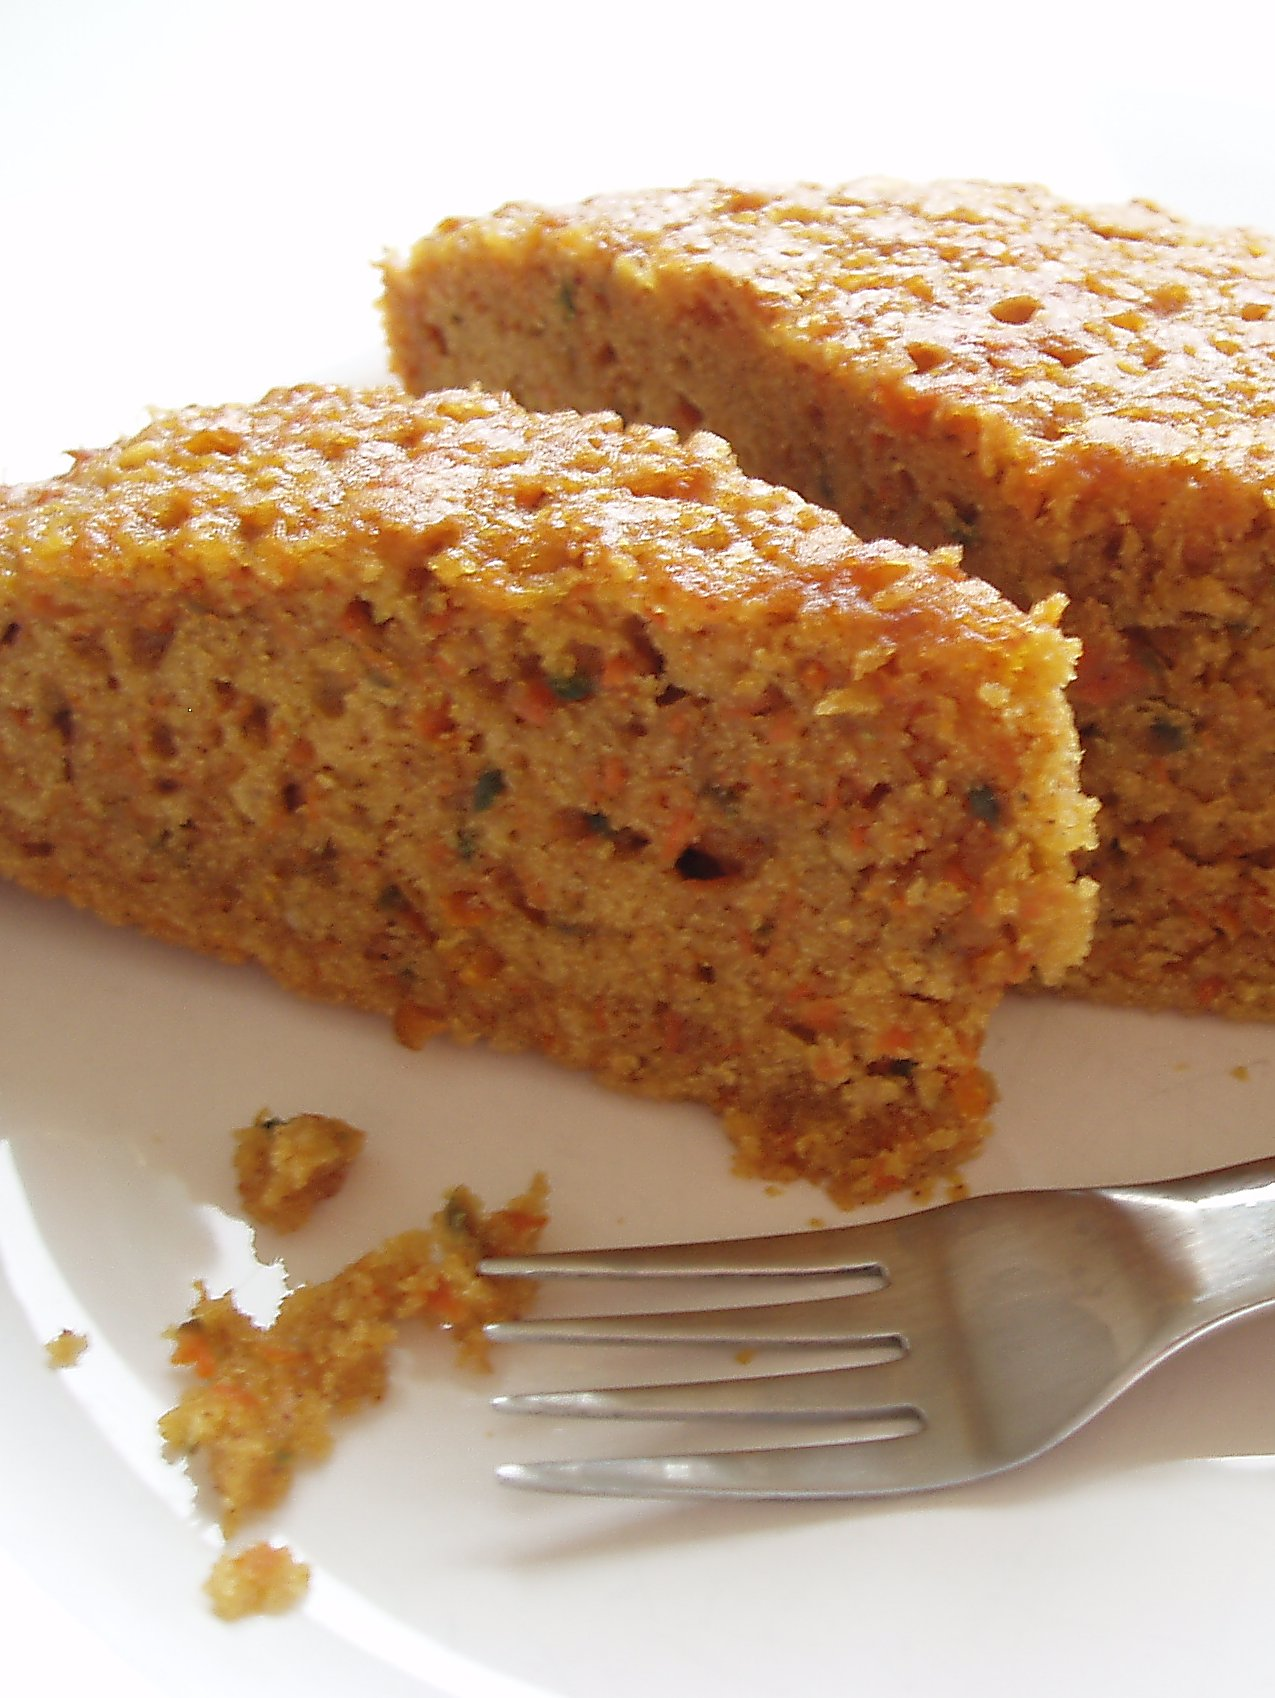 Simple Carrot Cake Recipe Without Nuts